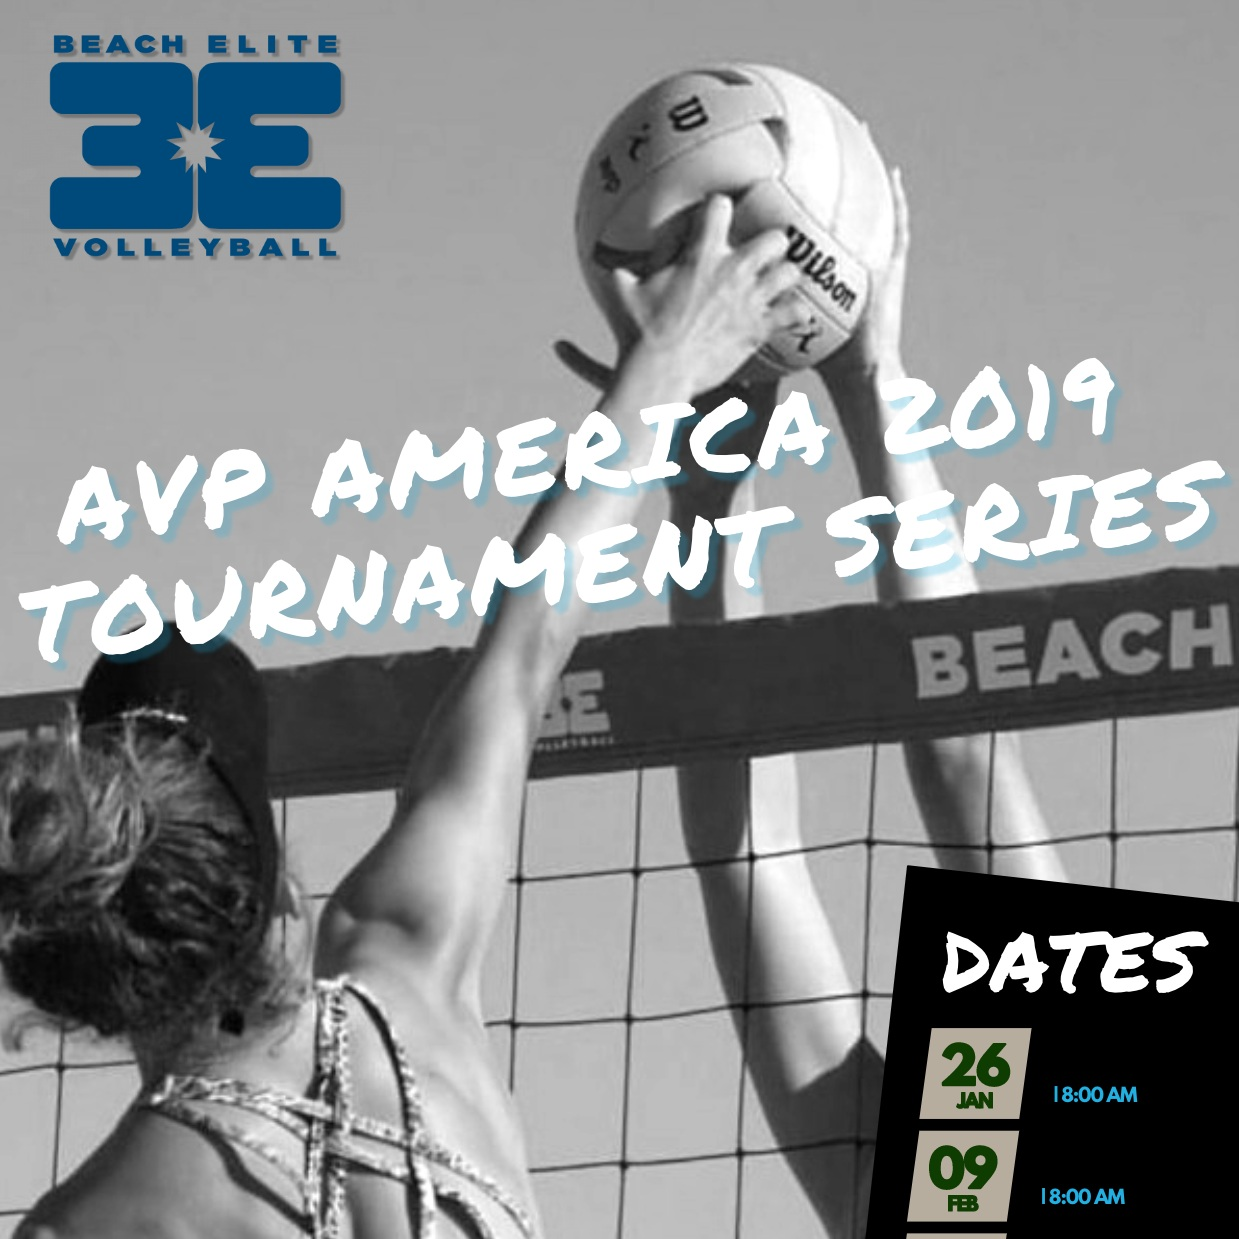 2019 Beach Series - AVP POINTS AWARDED AT ALL OUR TOURNAMENTS